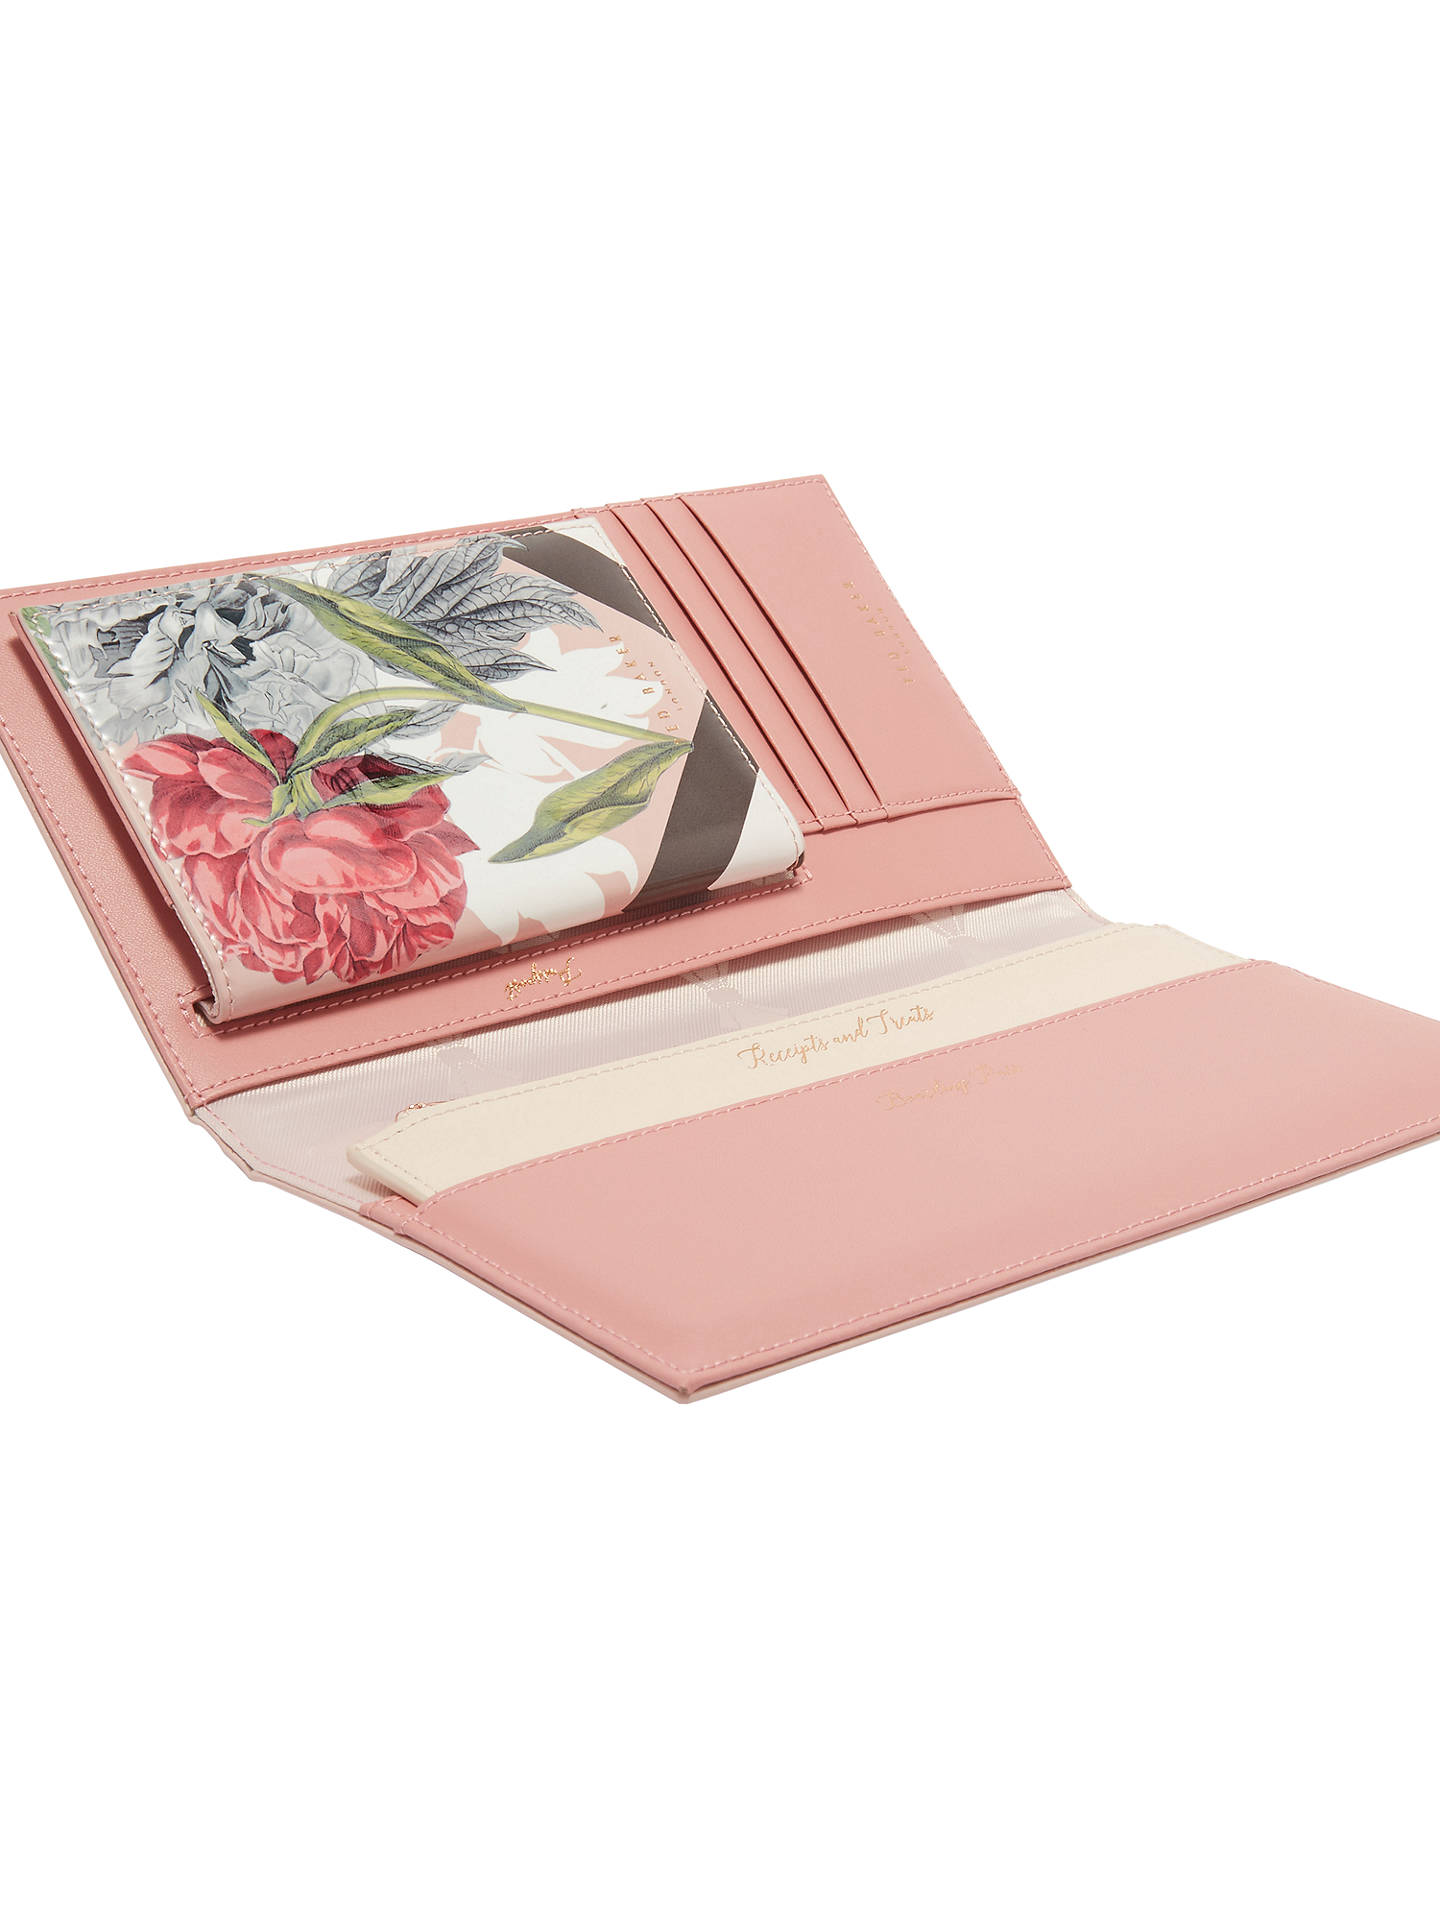 c213bfd6d1215e Buy Ted Baker Tessa Palace Gardens Leather Travel Wallet   Passport Holder